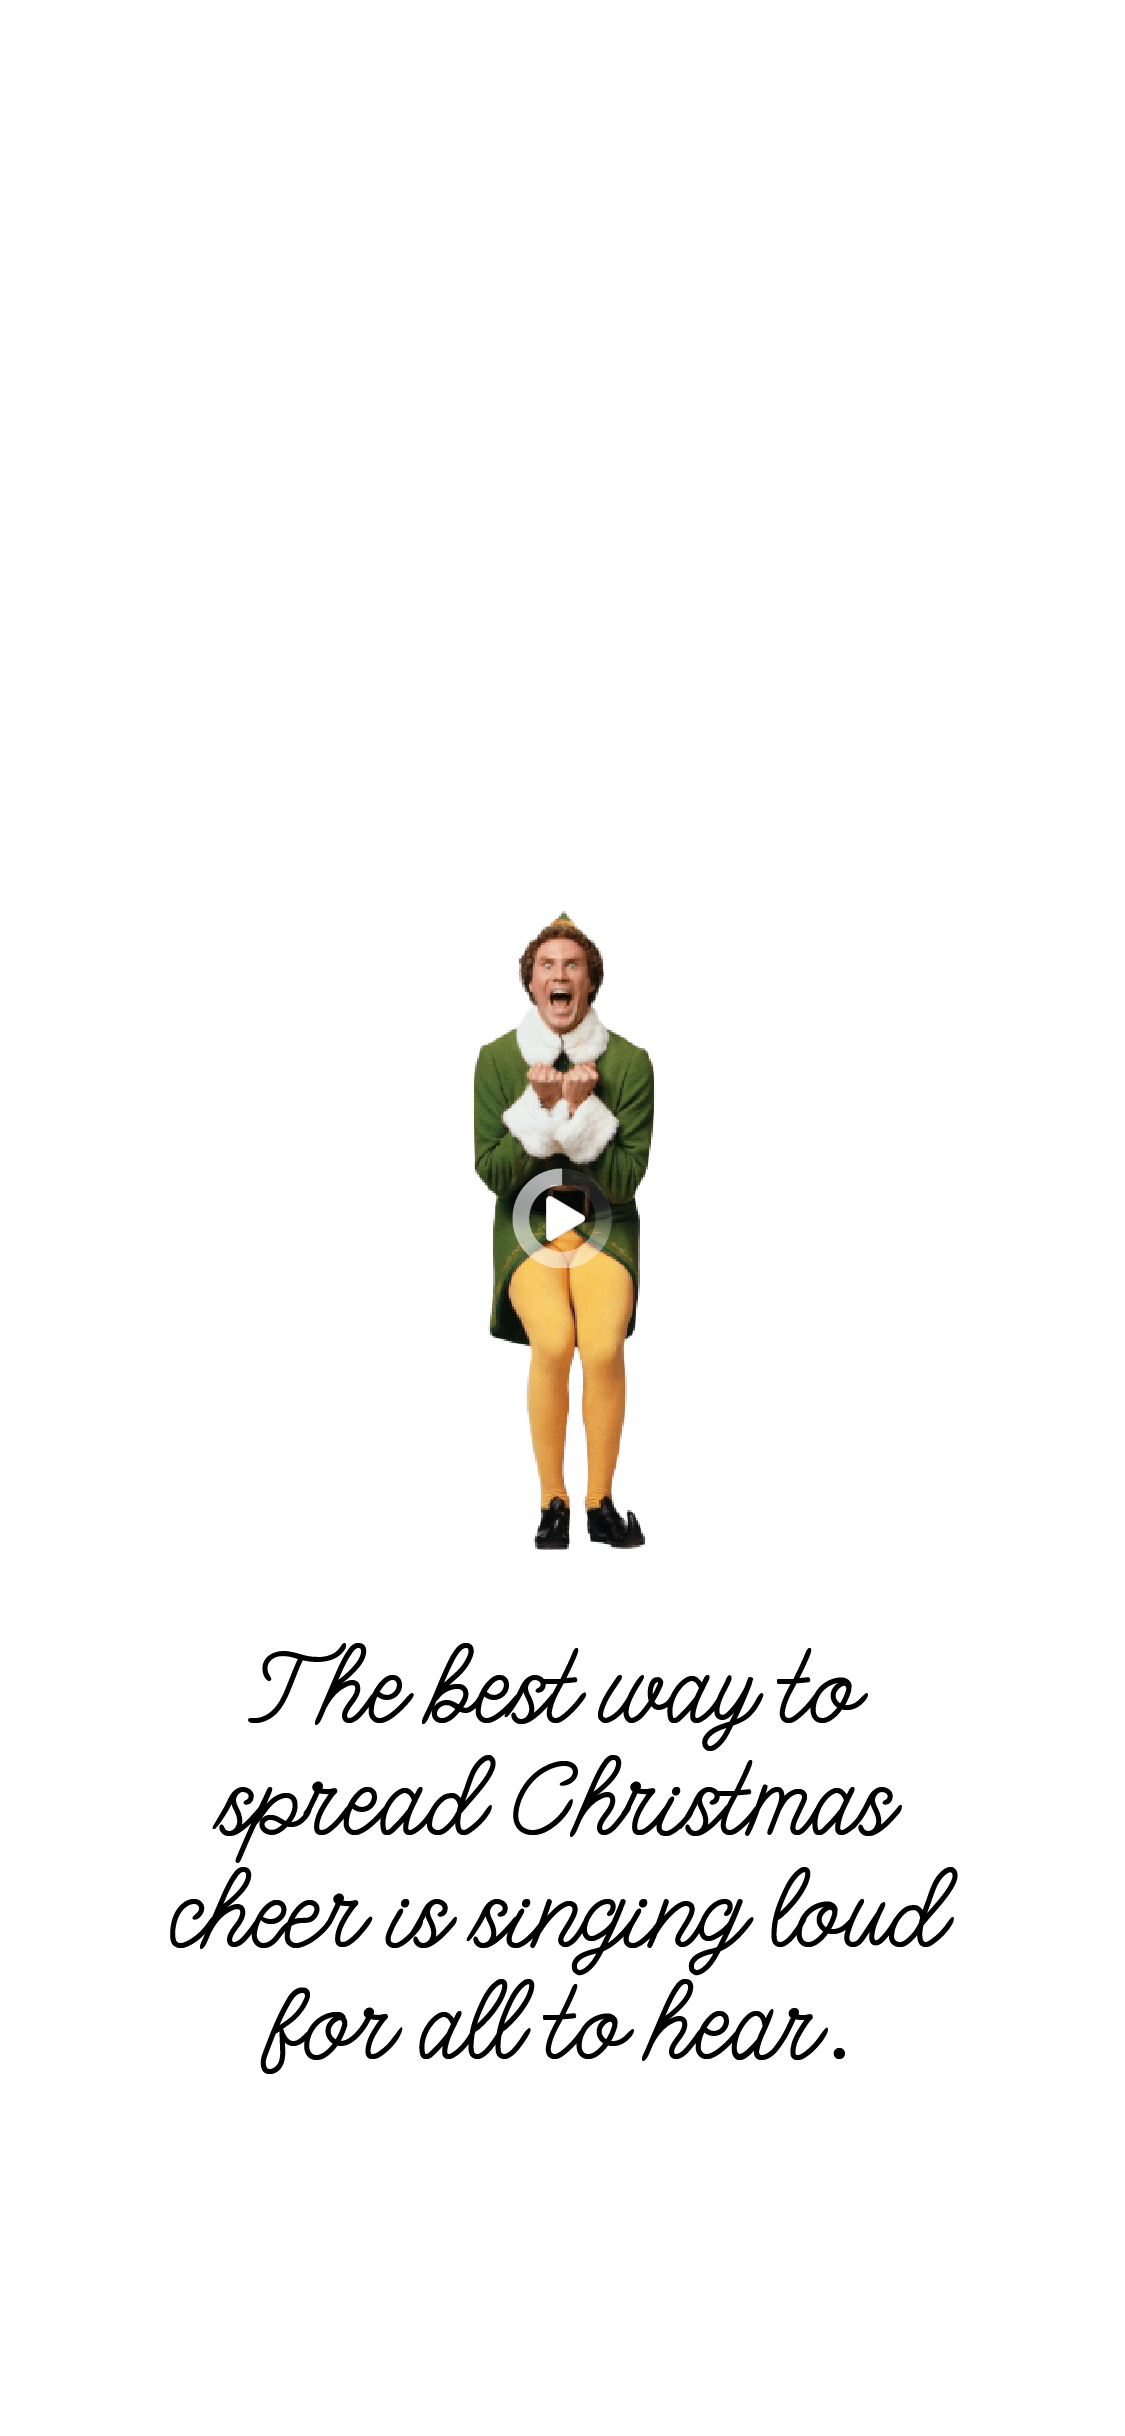 Elf Themed Iphone Wallpapers Ginger And Ivory In 2021 Funny Christmas Wallpaper Wallpaper Iphone Christmas Cute Christmas Wallpaper